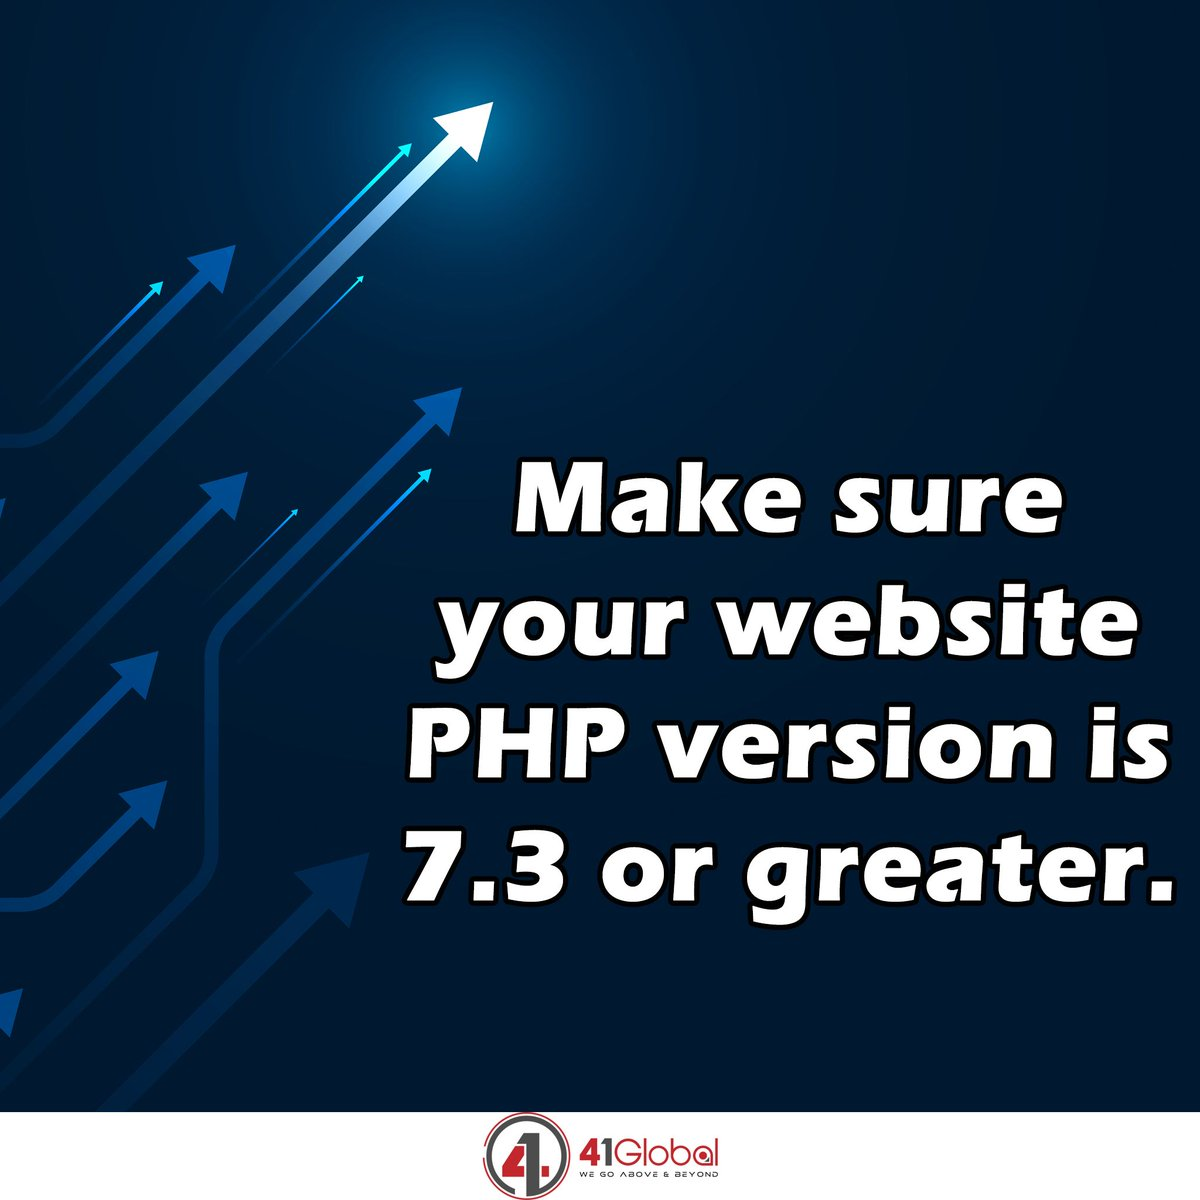 64% of websites are currently using #PHP versions that are no longer supported as of December 2019.  This is not only bad from a security perspective,but also because there is still a large portion of sites that aren't taking advantage  performance enhancements #joomla #wordpress https://t.co/MWCESDPbPk